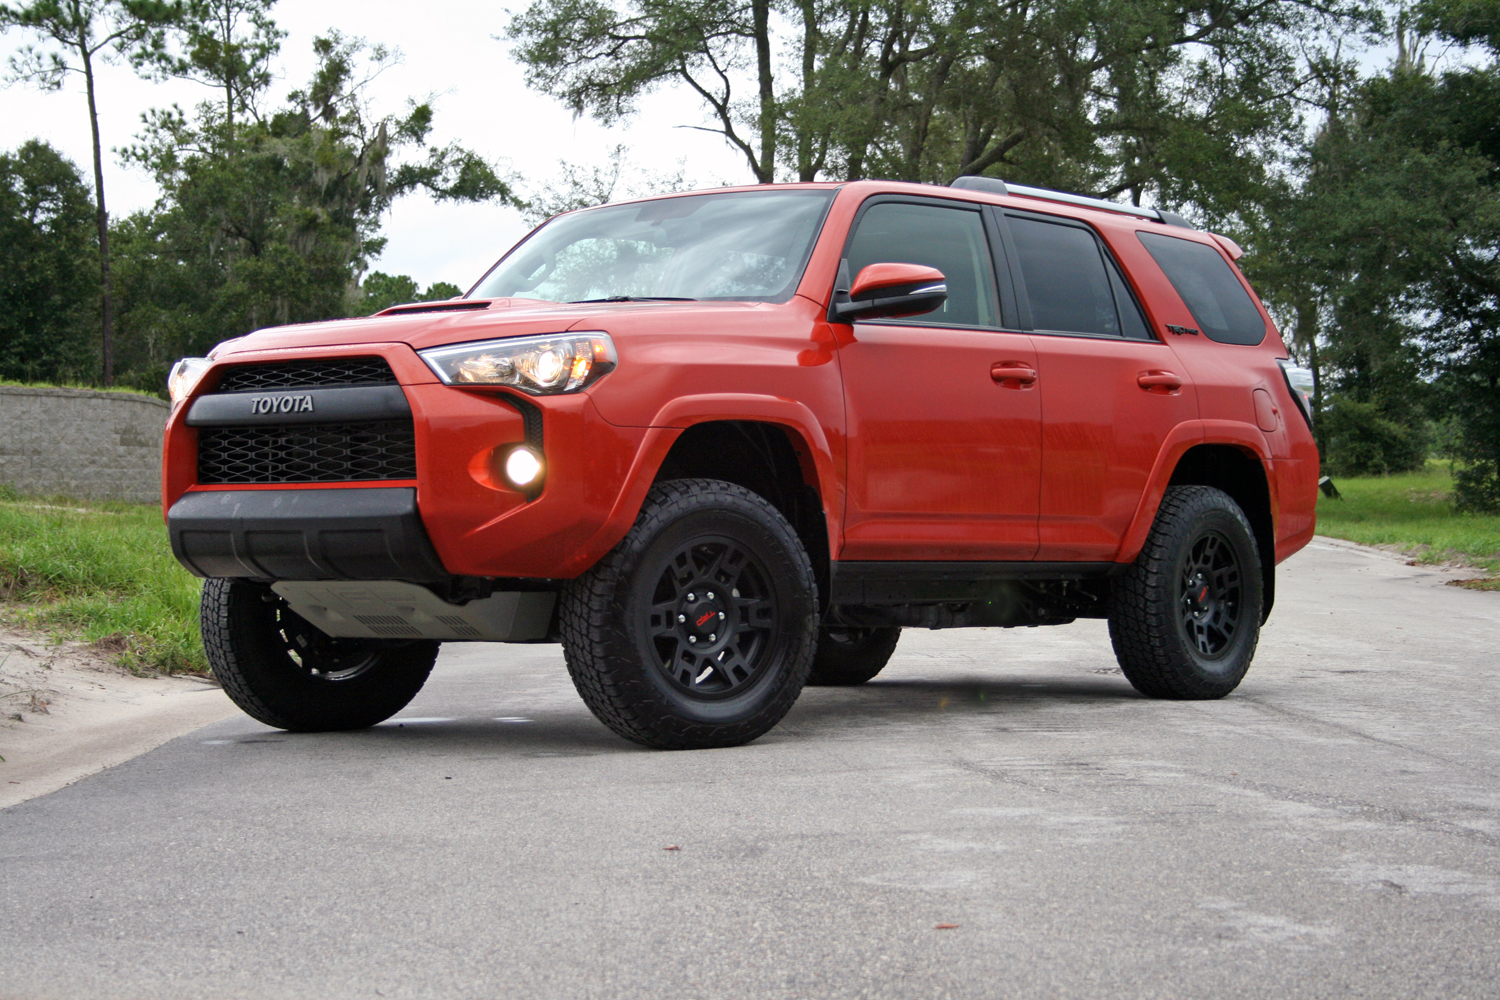 2018 Jeep Wrangler Lifted >> Toyota 4Runner TRD Pro Vs. Jeep Wrangler Unlimited Review - Top Speed